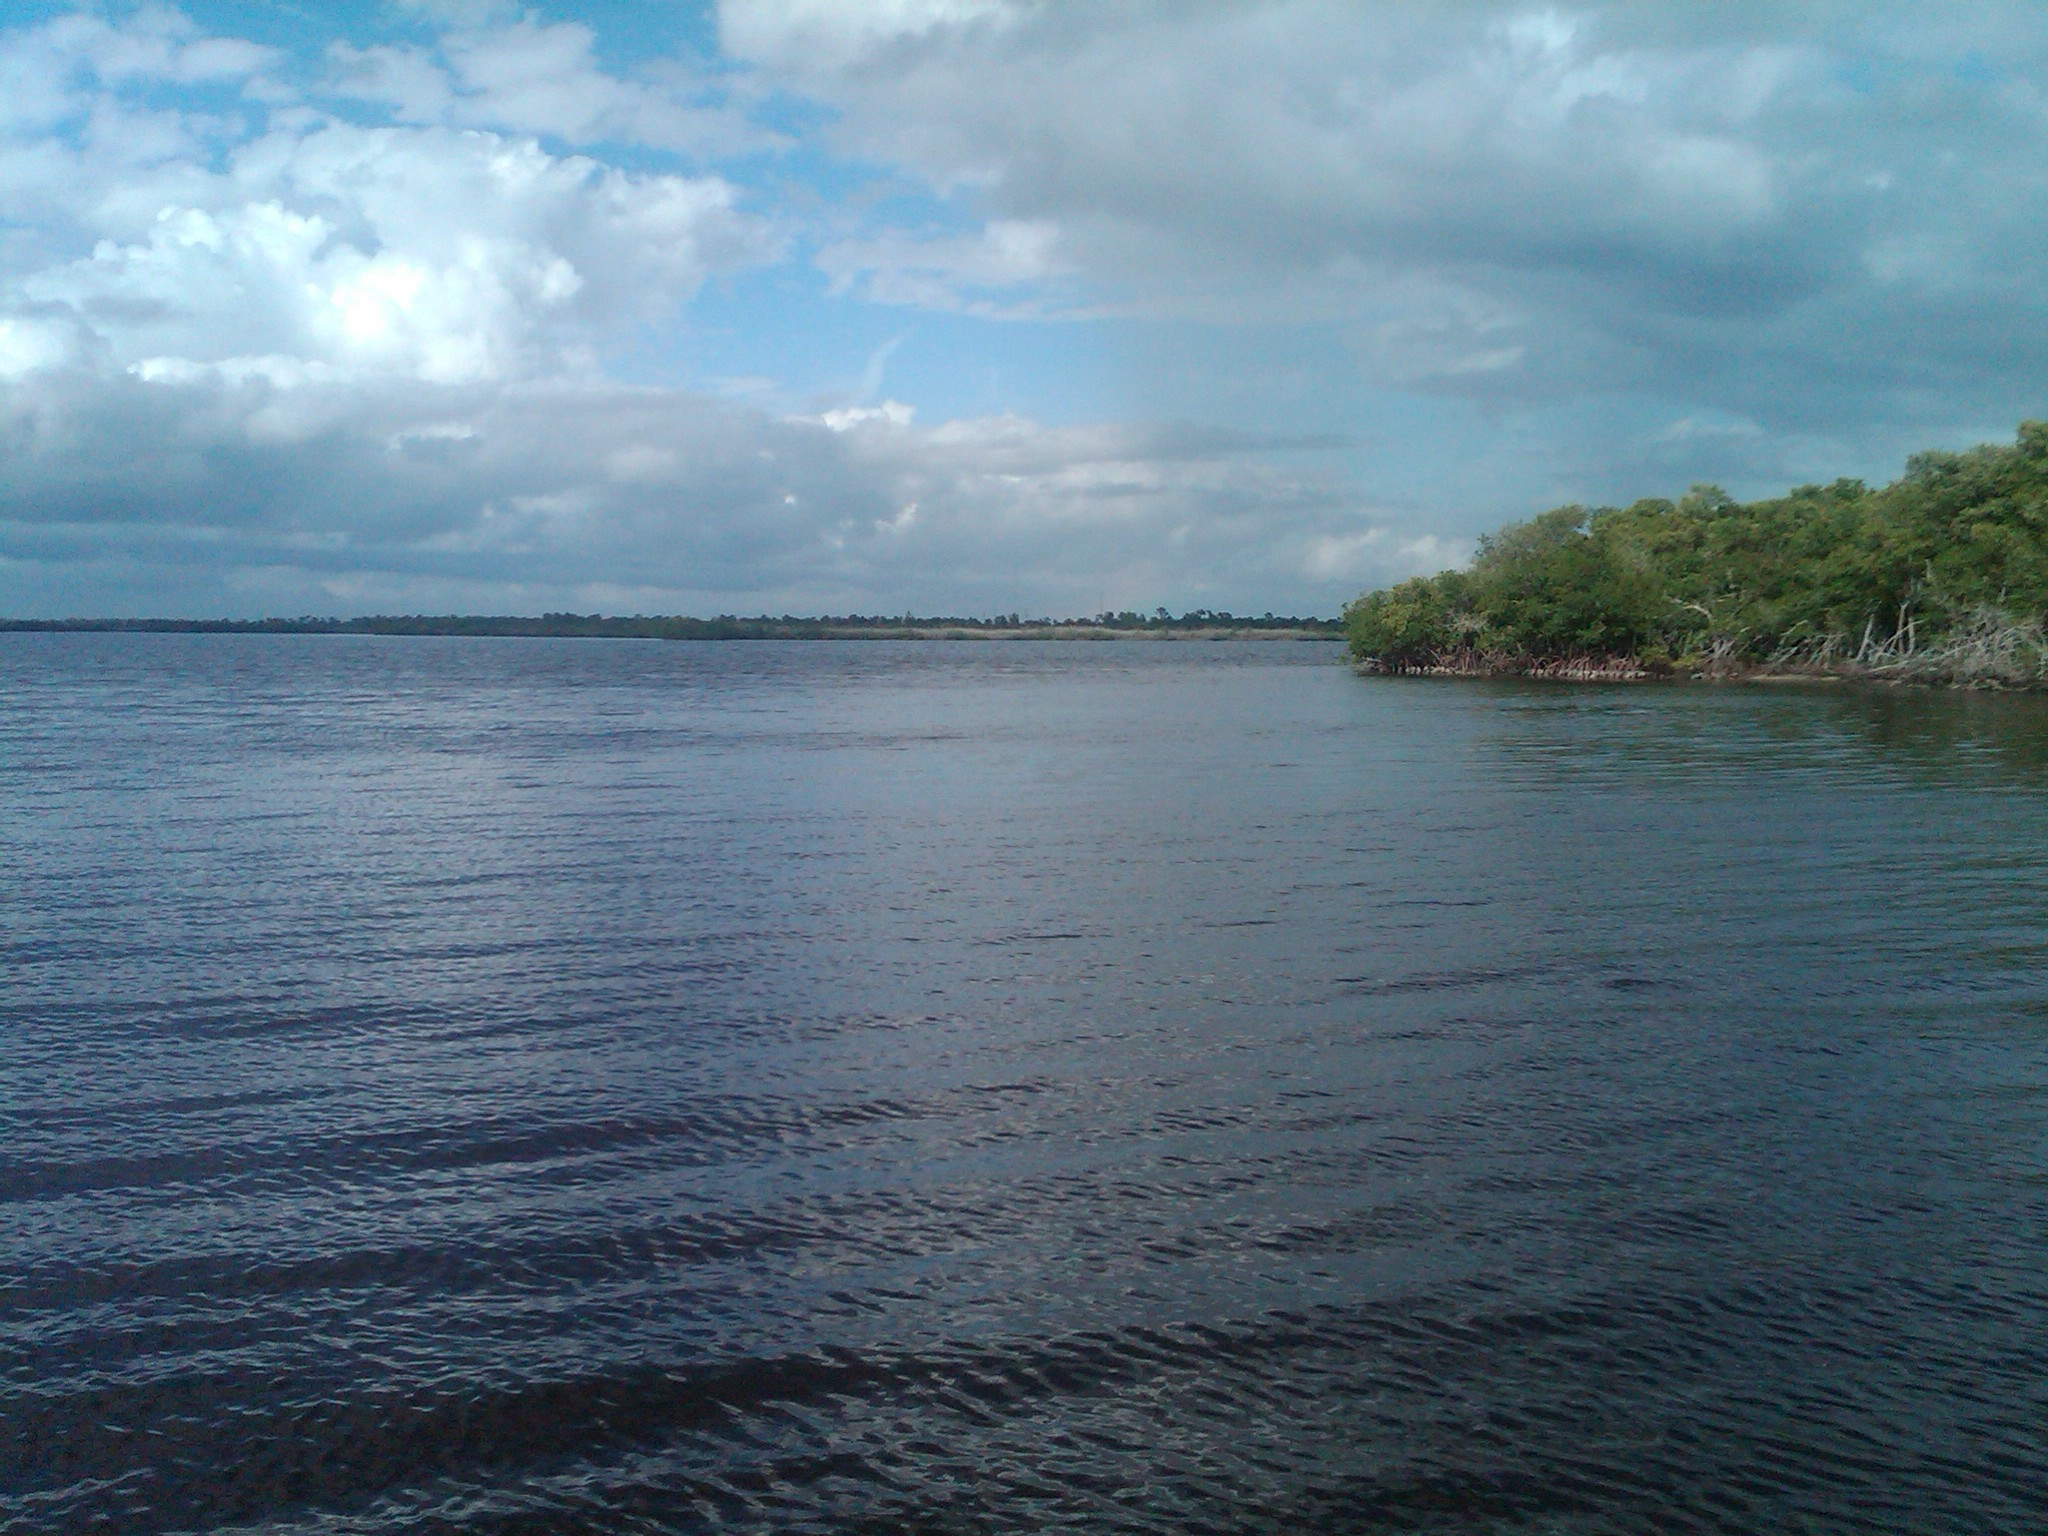 charlotte harbor chat Search charlotte harbor real estate property listings to find homes for sale in charlotte harbor, fl browse houses for sale in charlotte harbor today.